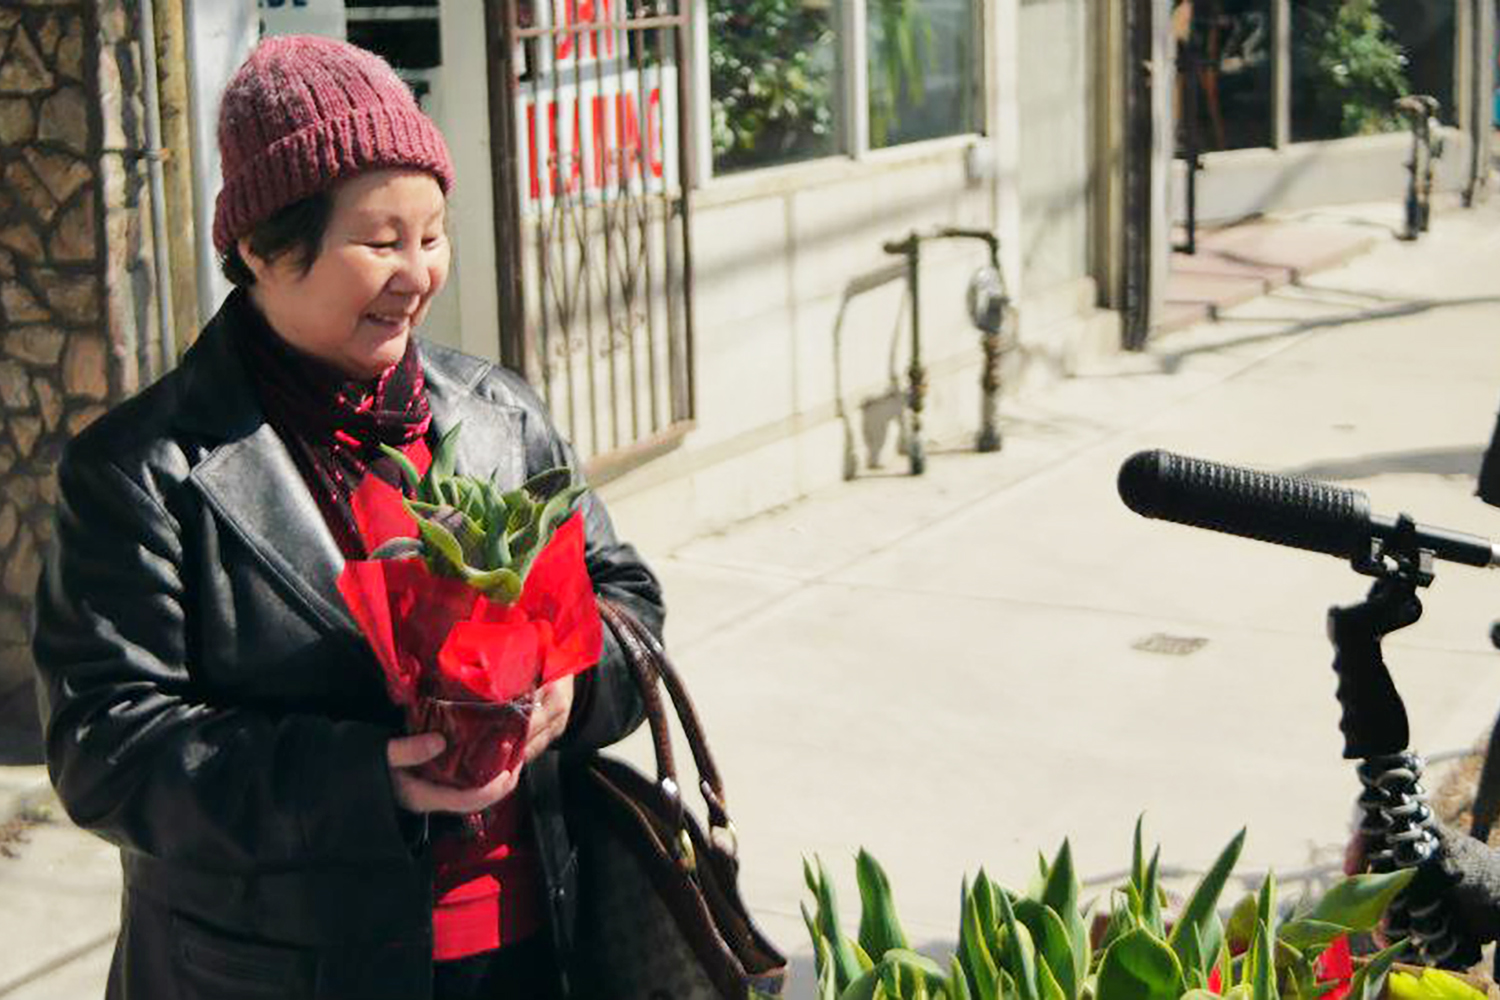 The Tale of a Town Toronto Parkdale Storygathering Team Trading Tulips for Stories